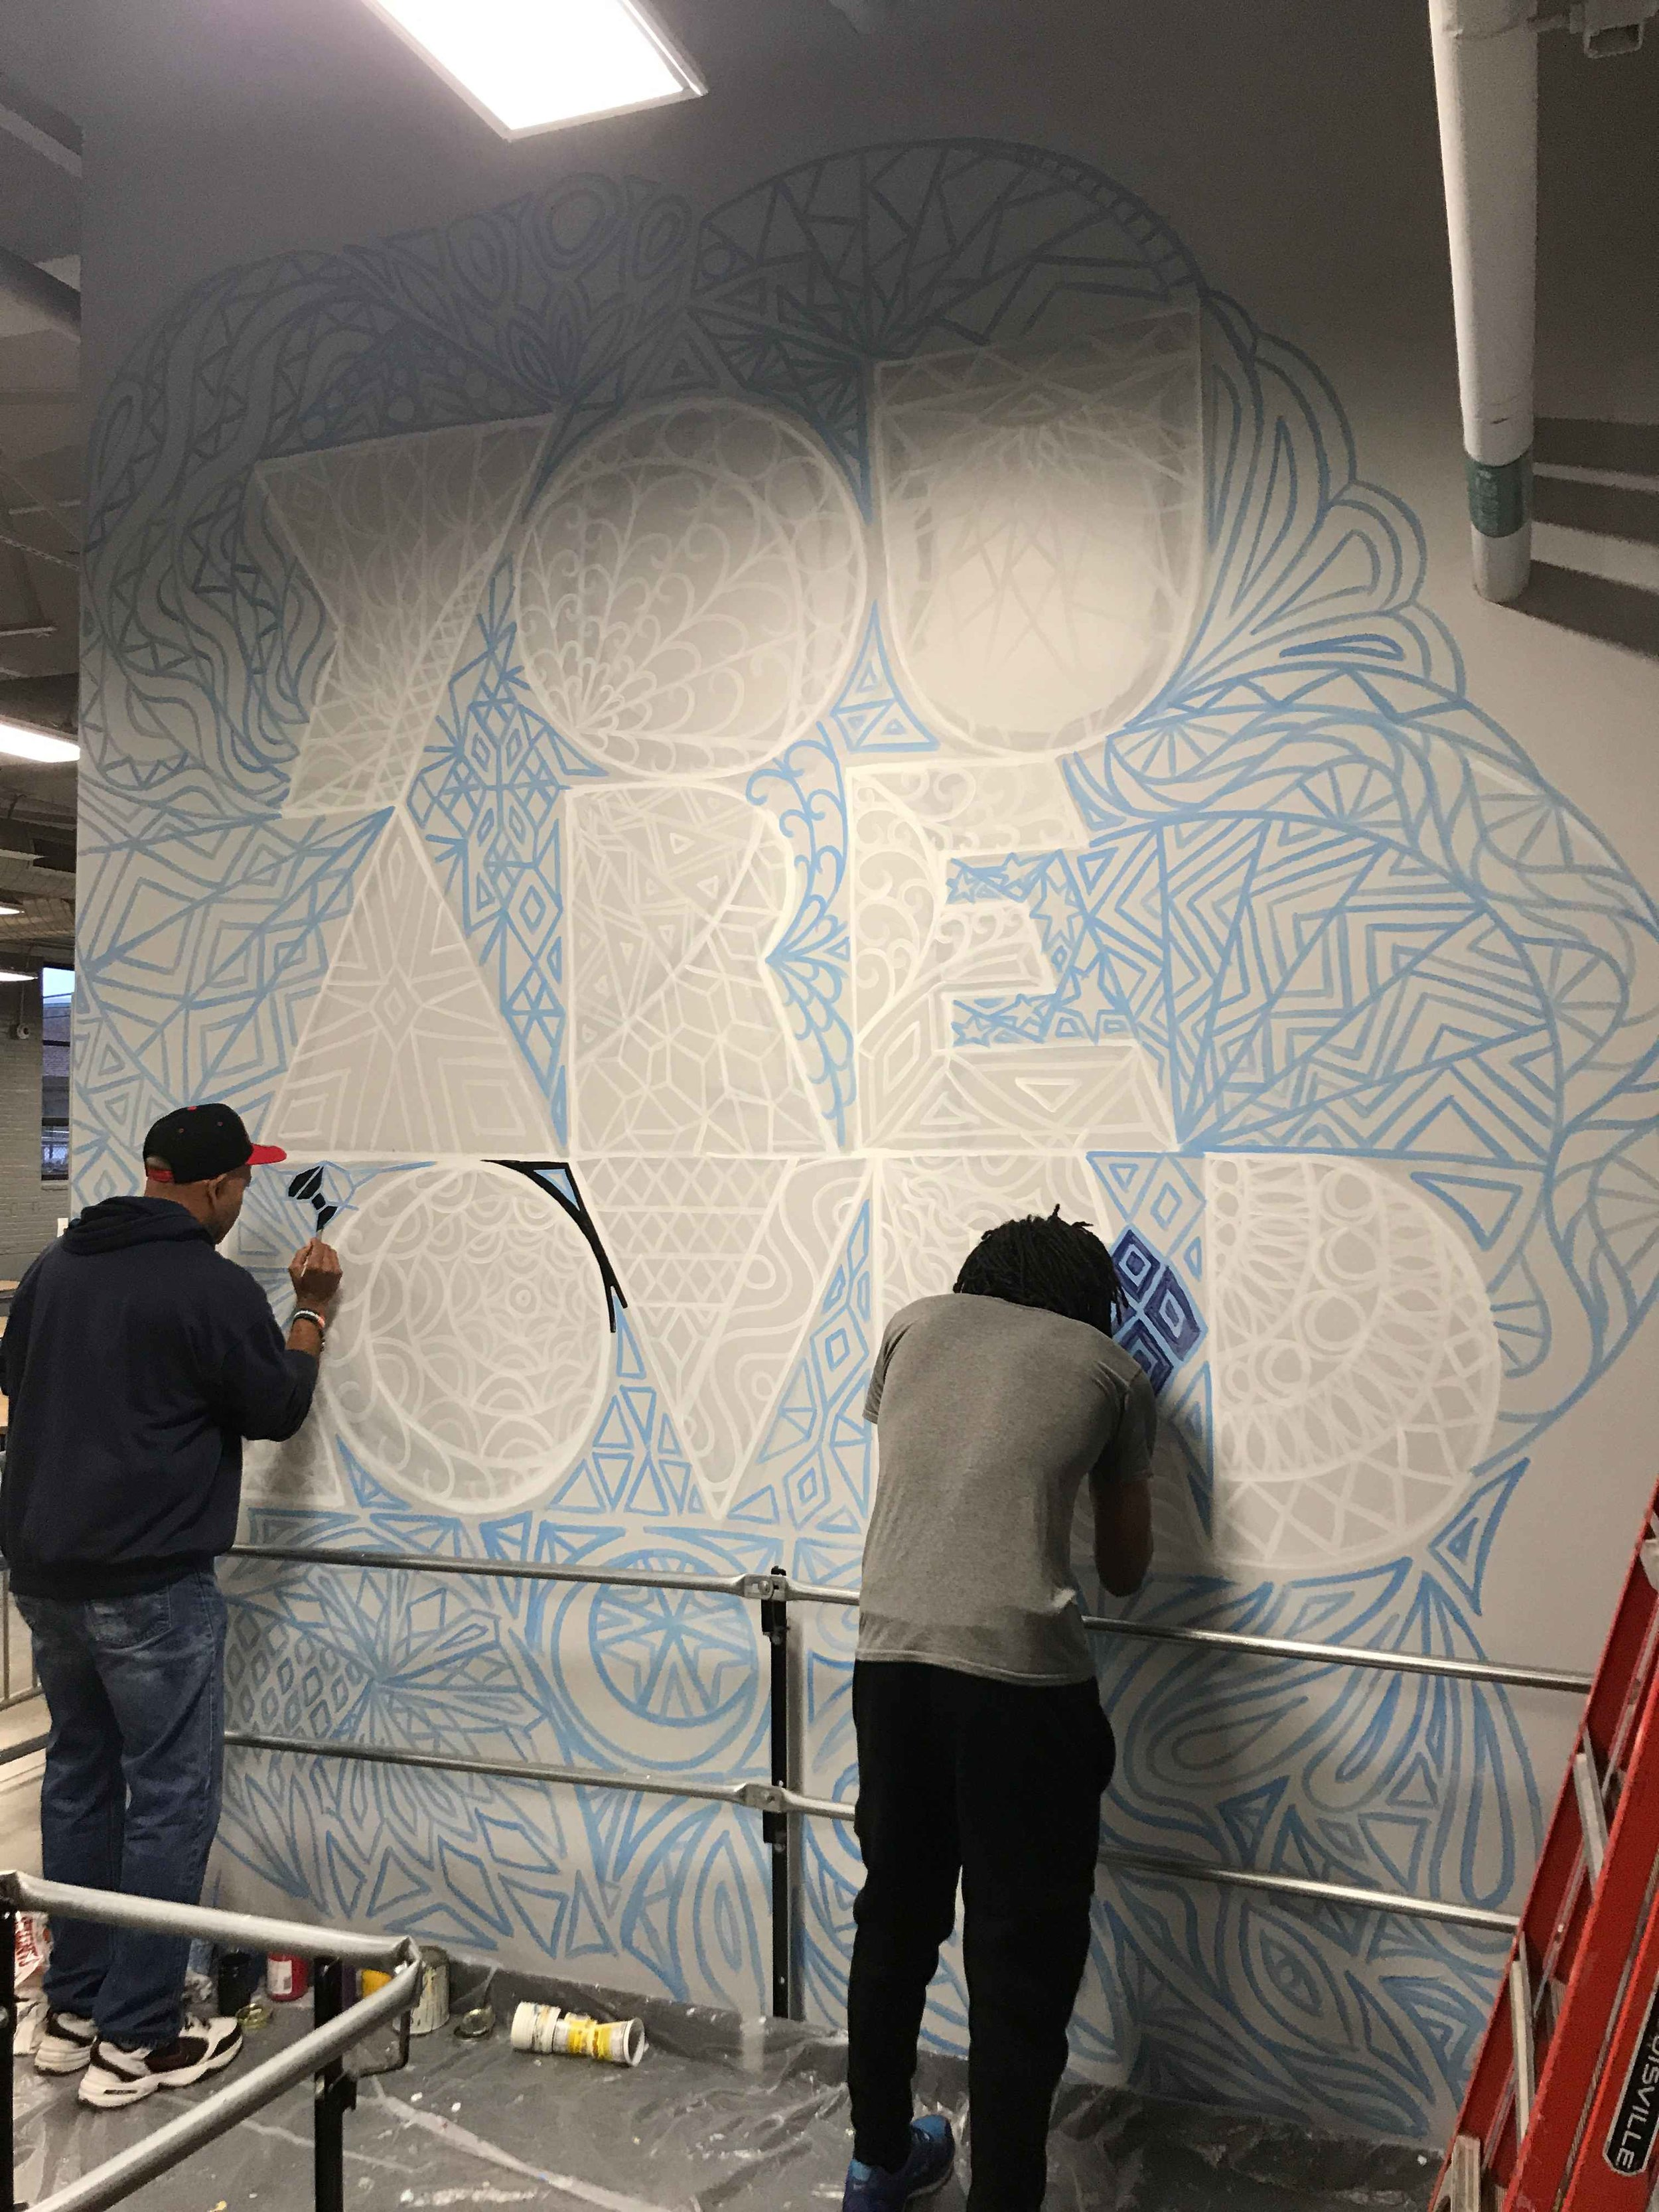 Residents work on an intricate YOU ARE LOVED design at the Southampton Street Shelter in Boston, MA